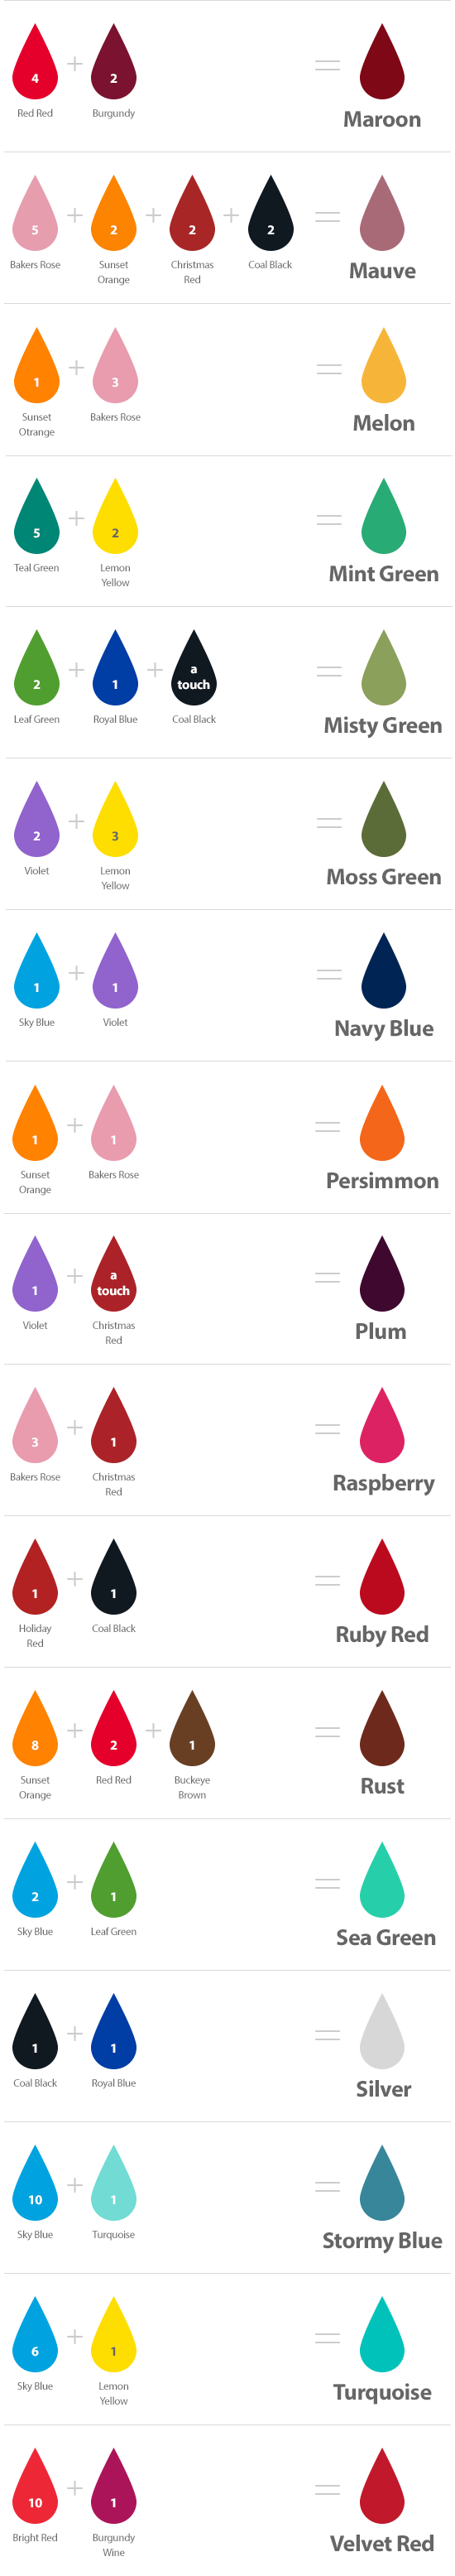 Chefmaster Blog | Color Mixing Guide for Food Coloring ...